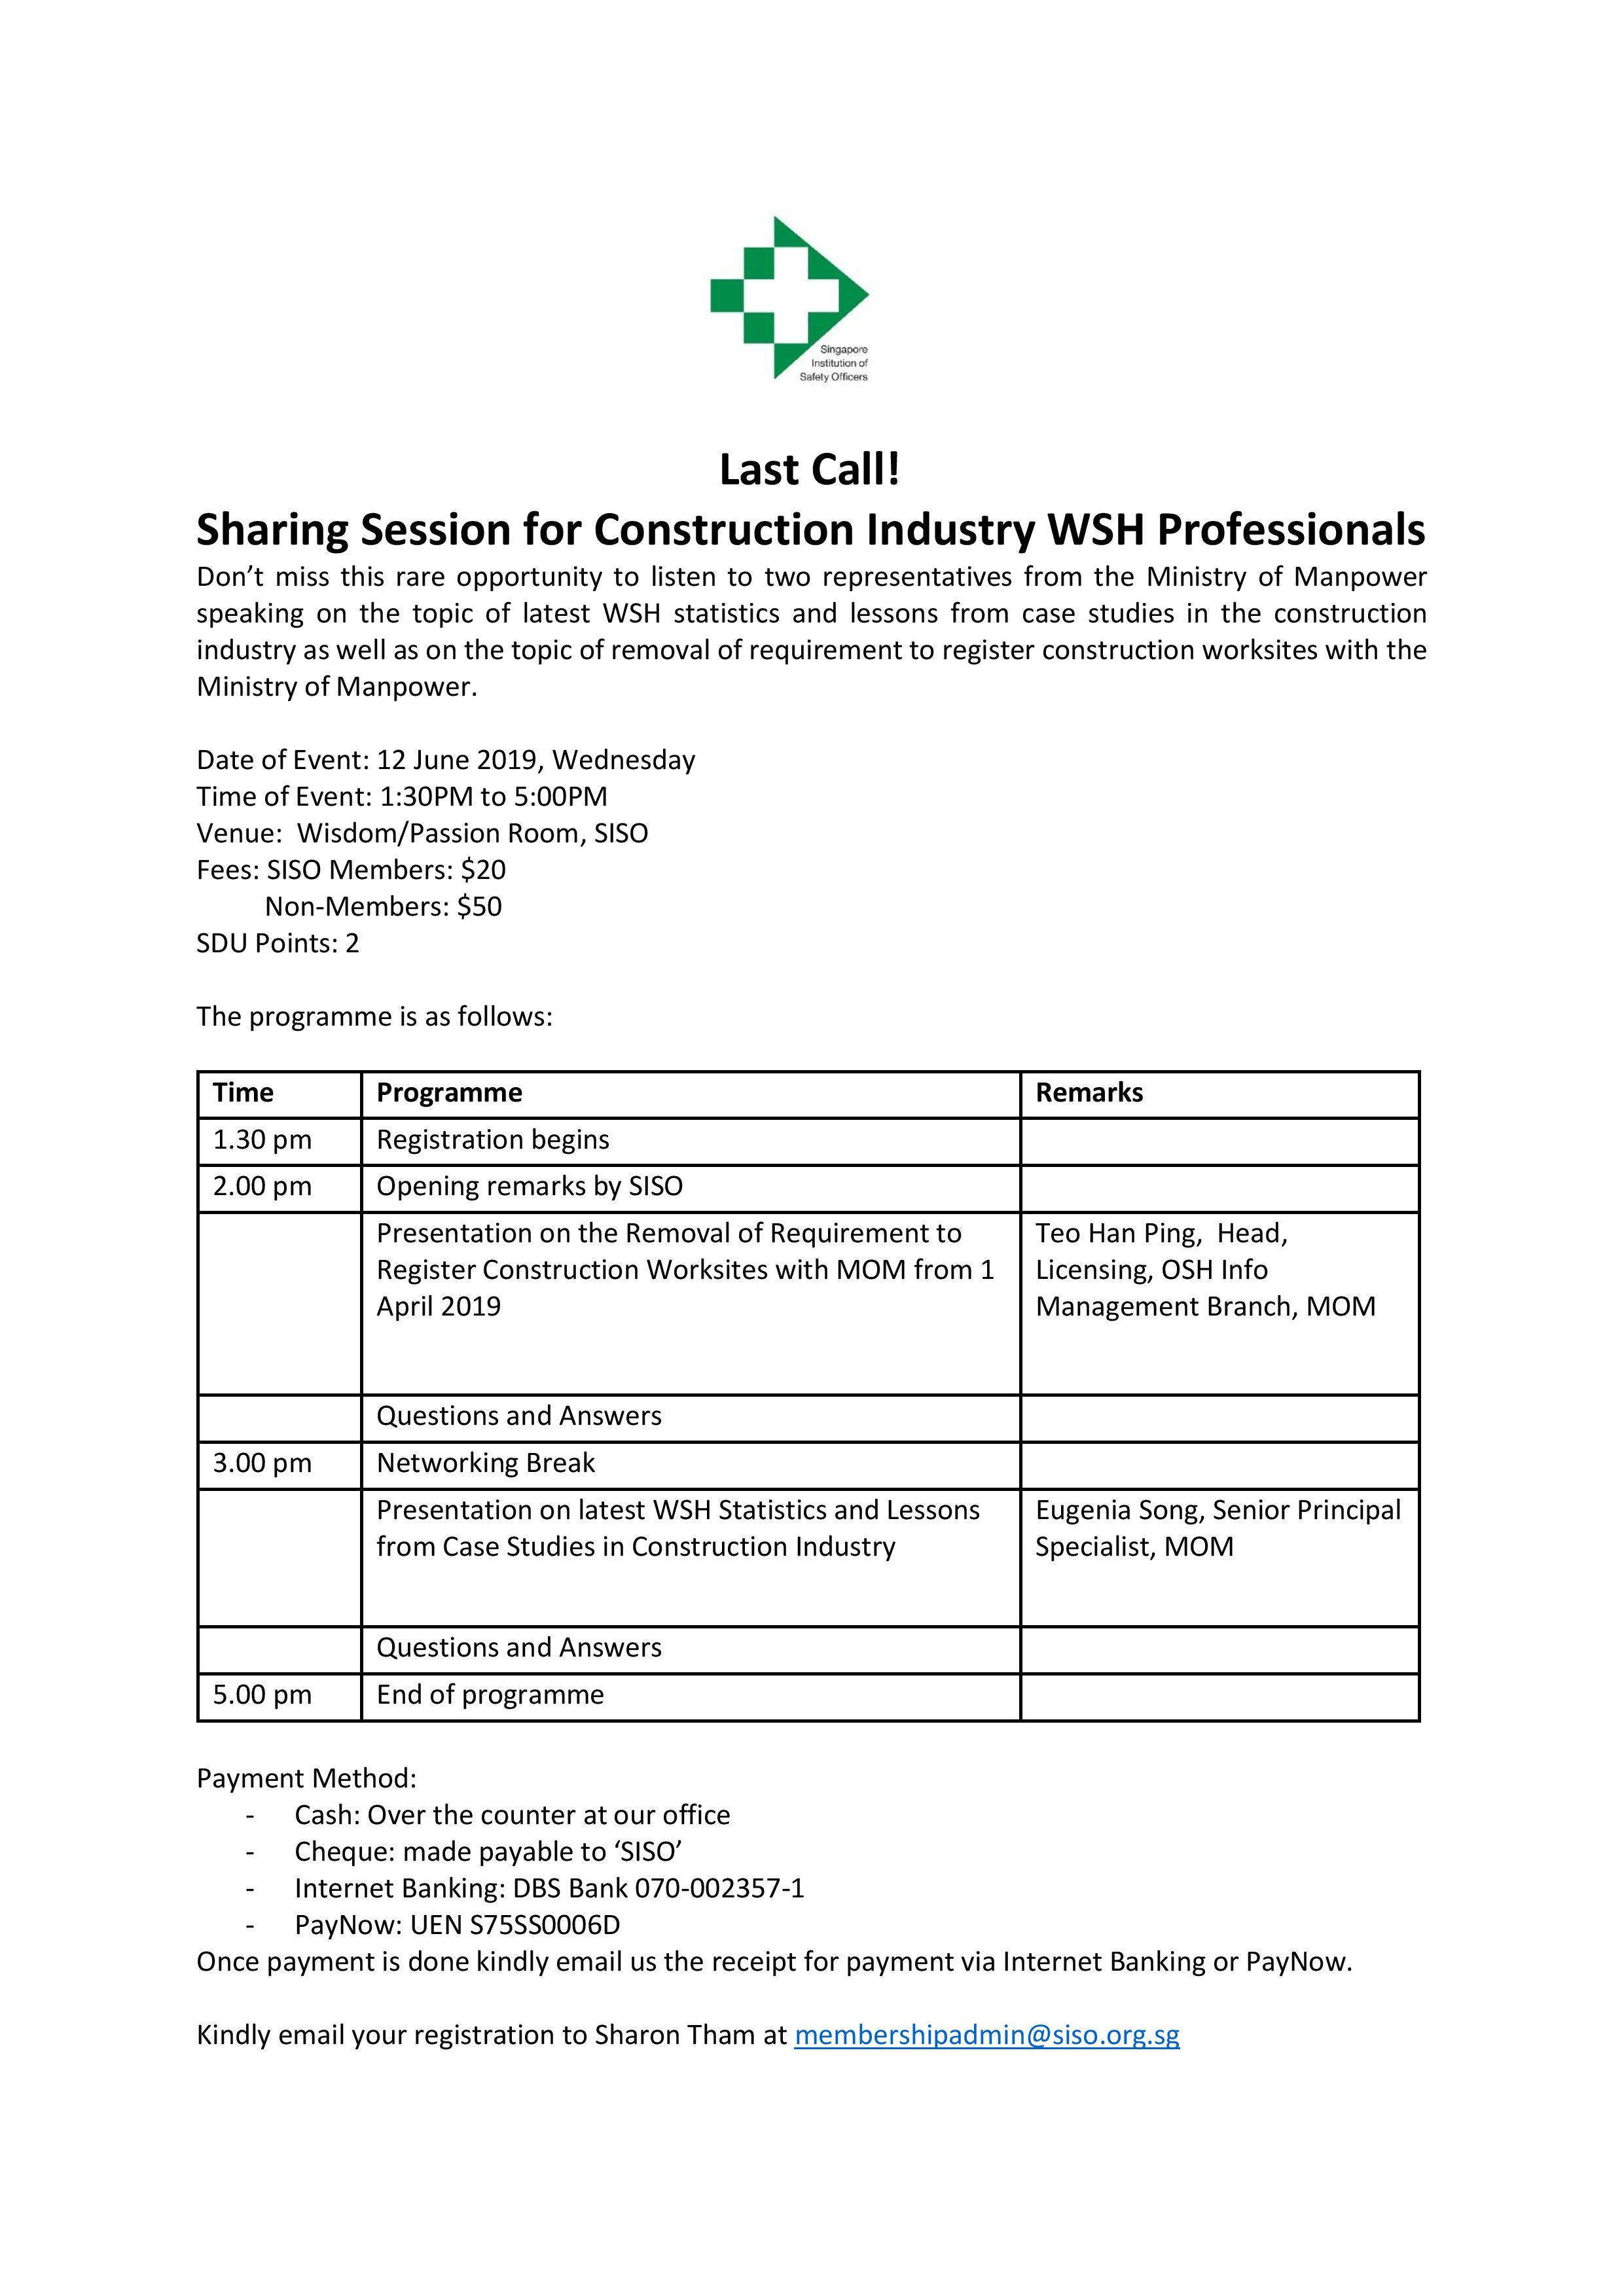 LAST CALL Sharing Session for Construction Industry WSH Professionals FINAL